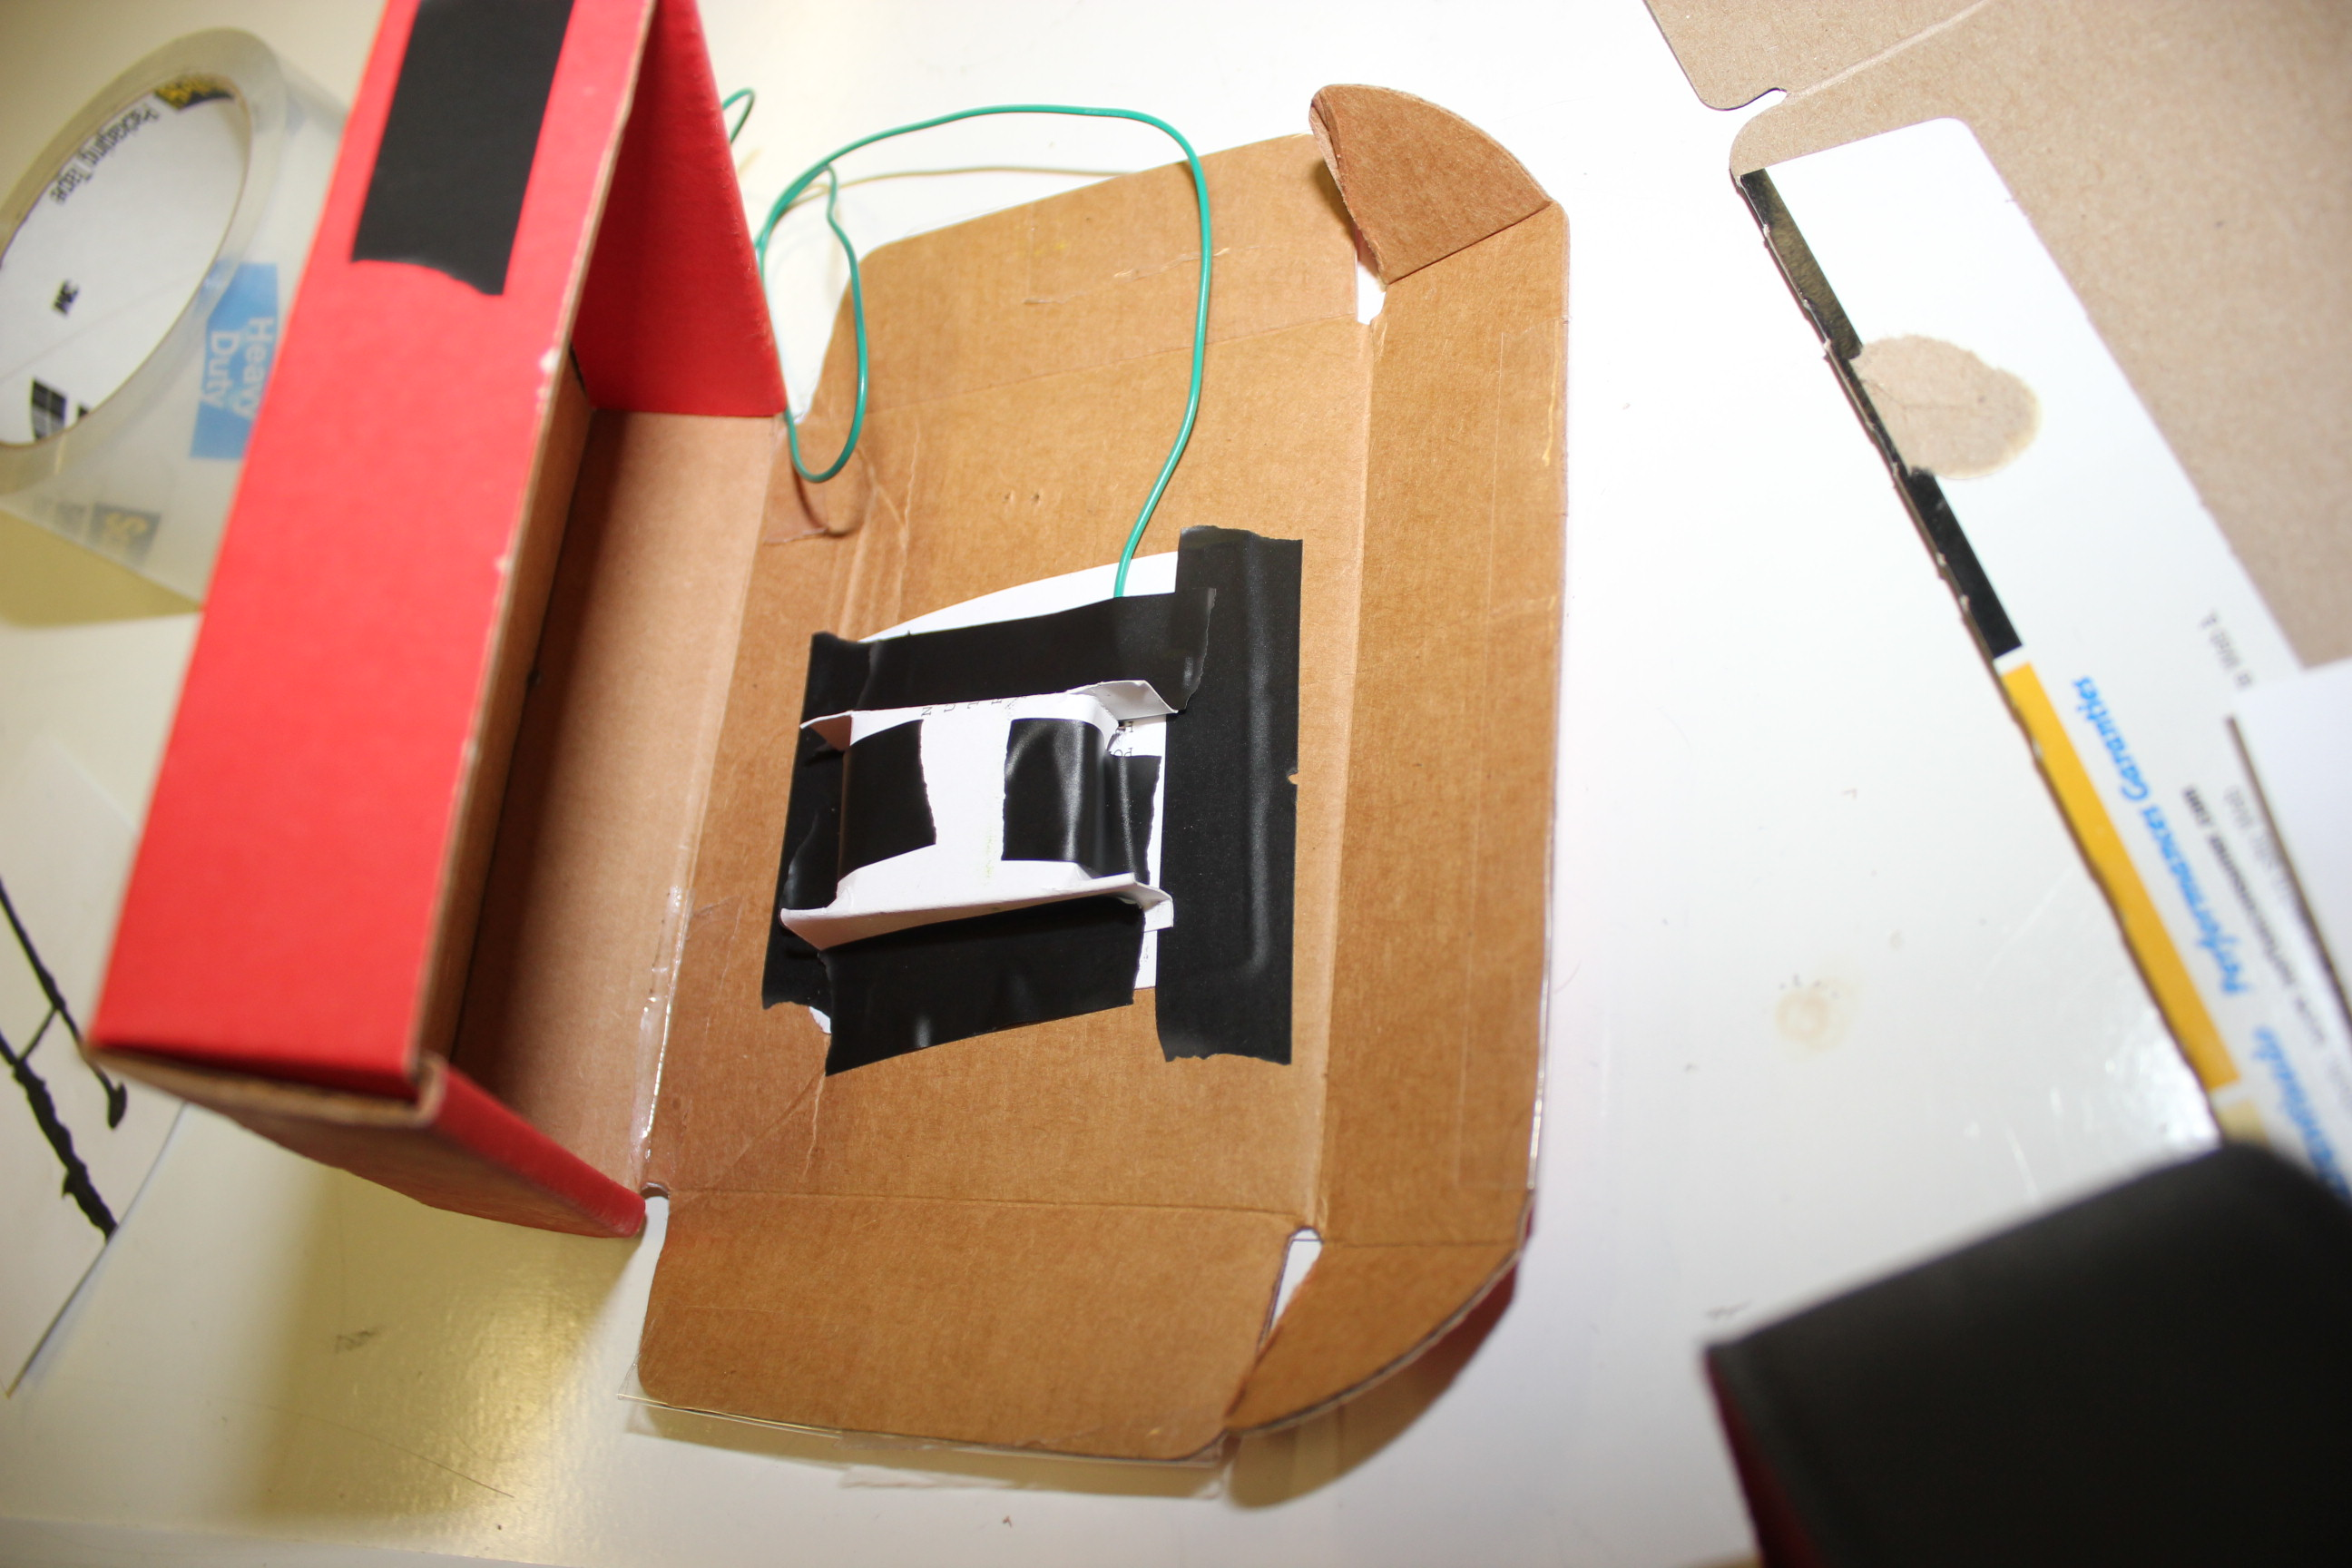 Picture of Step 007 - Tape the Box Inside the Larger Box